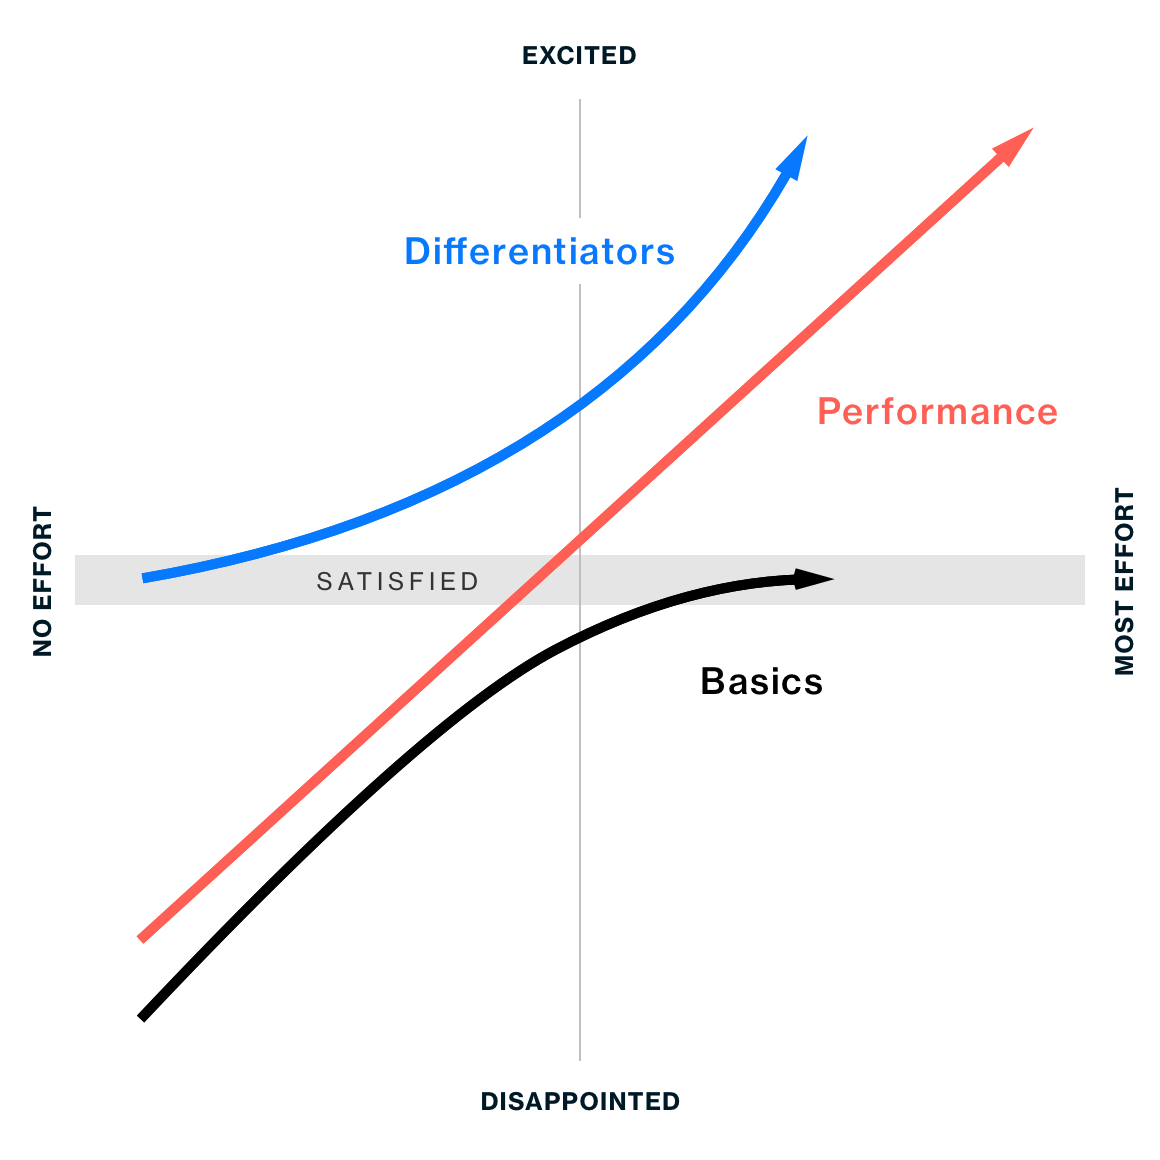 Kano Model Differentiator Category